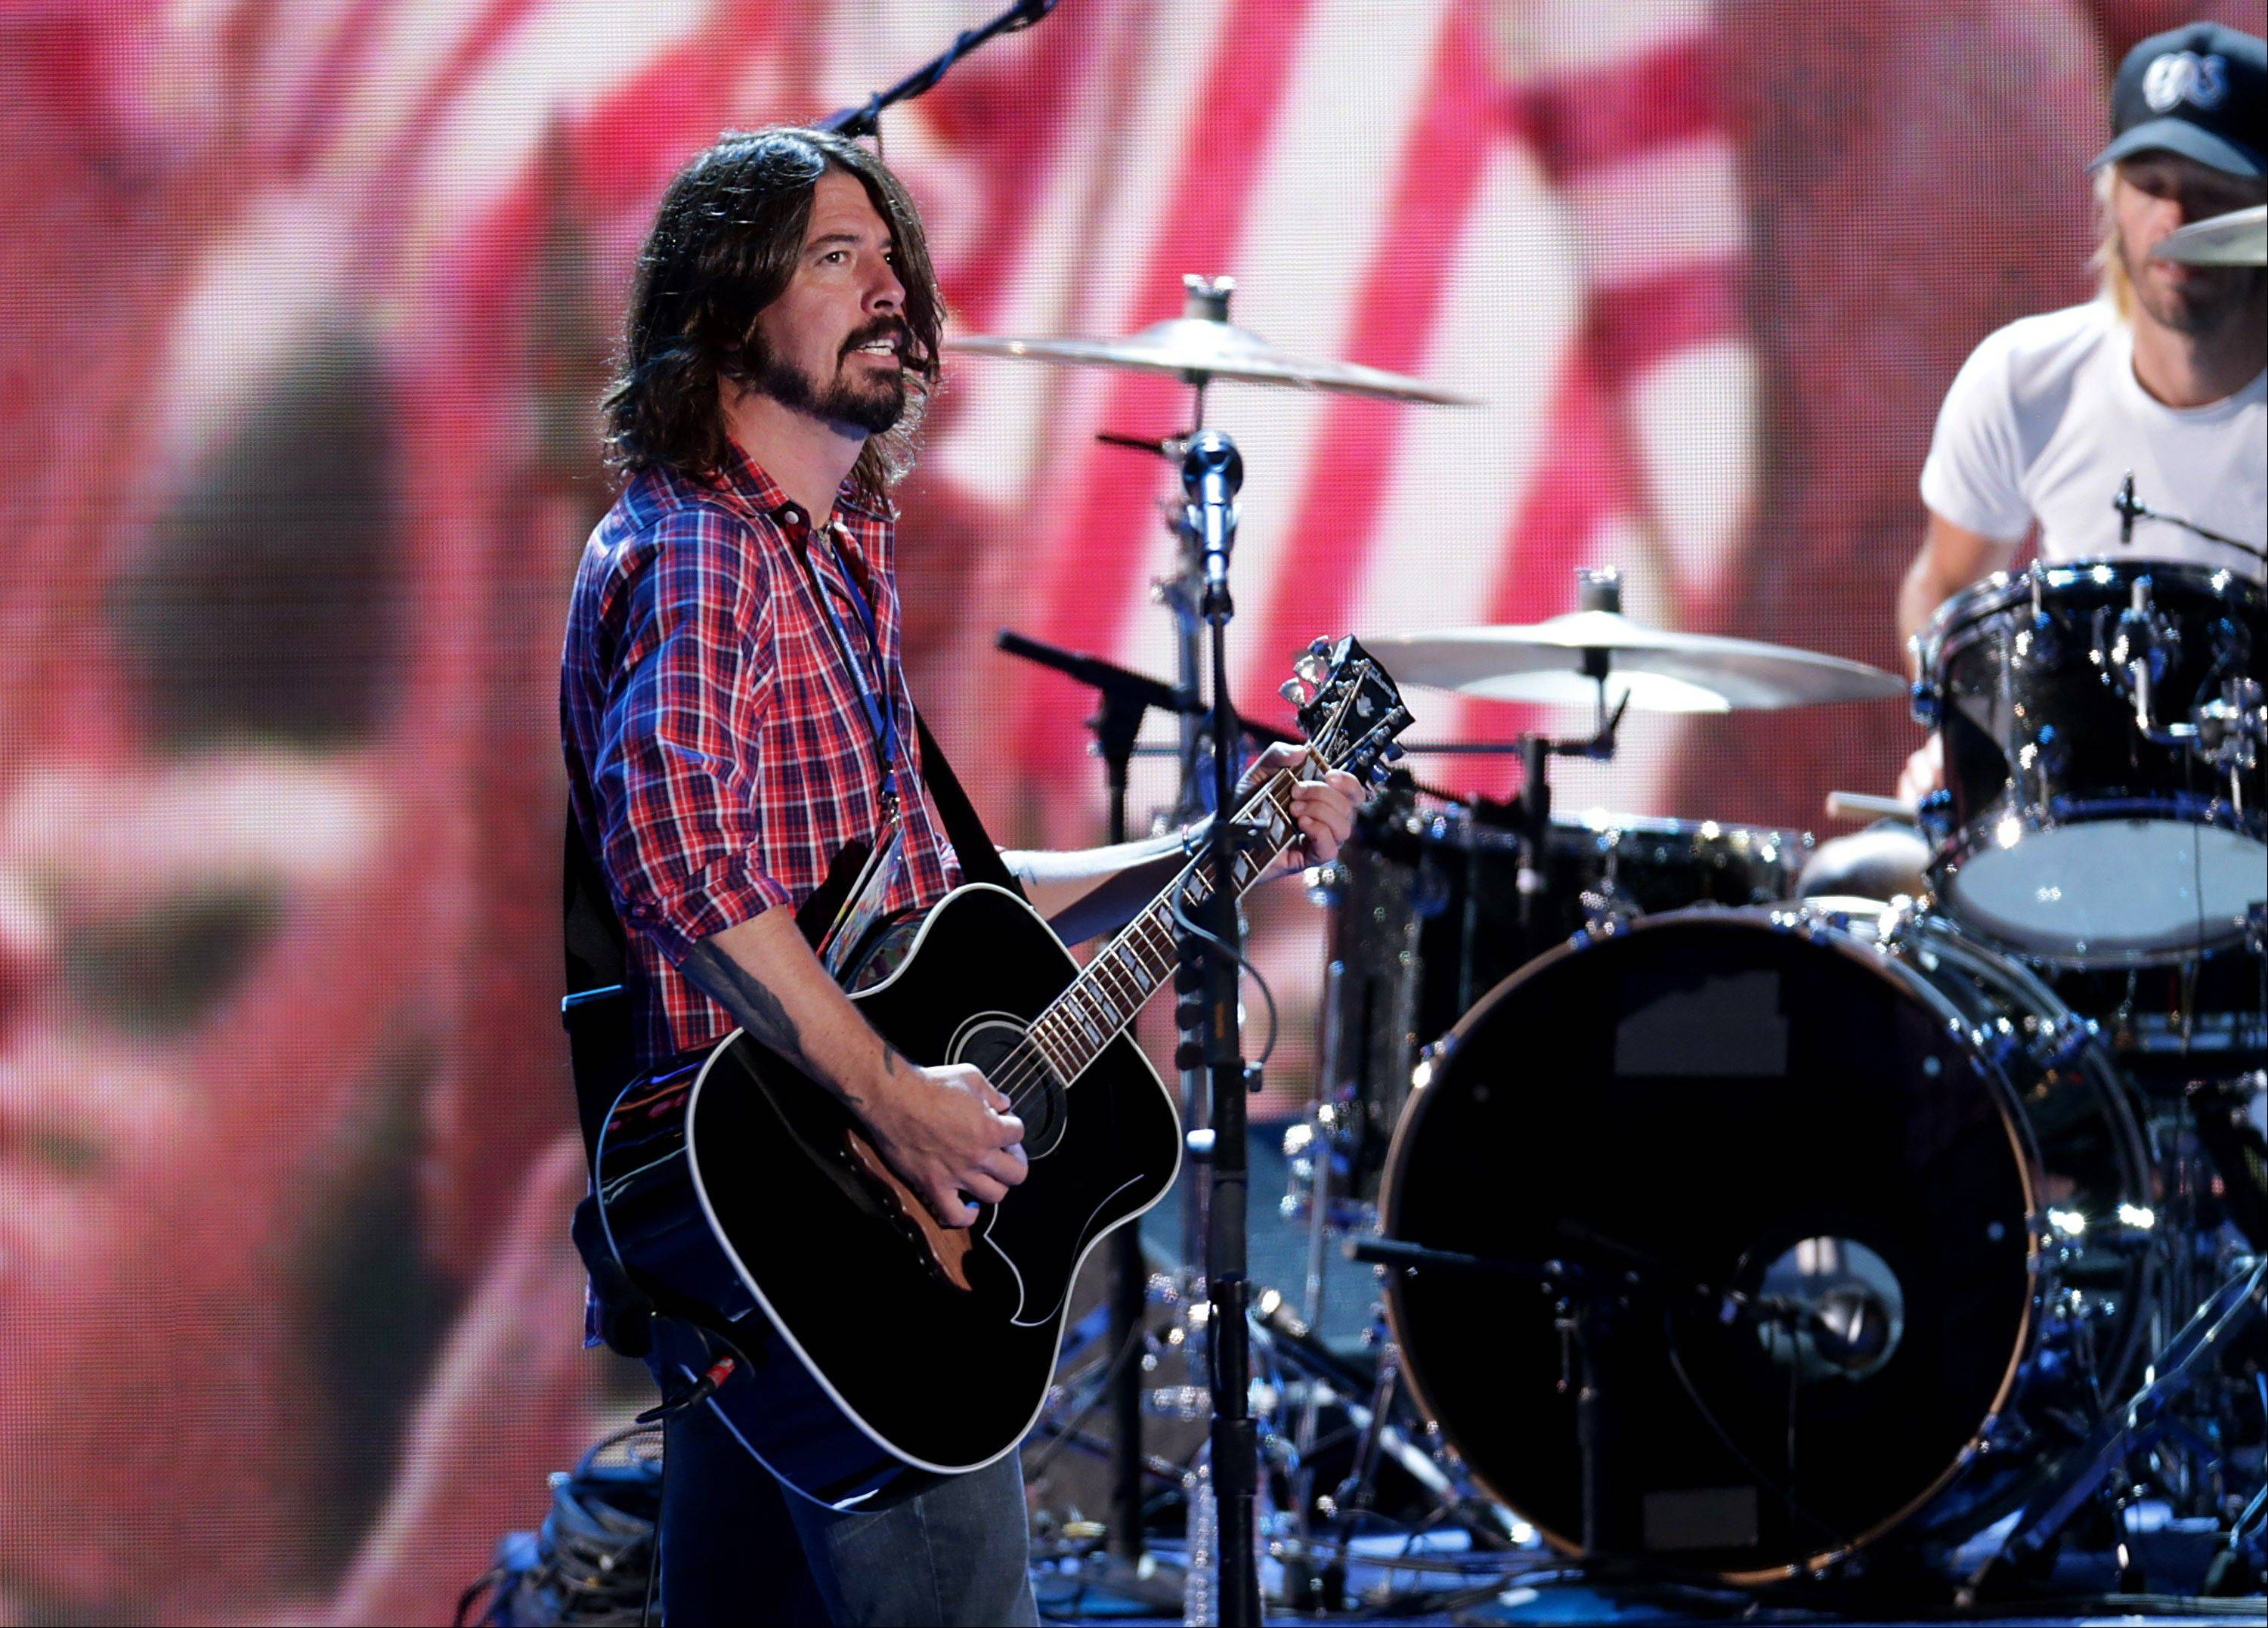 Dave Grohl, left, and Taylor Hawkins of the Foo Fighters are officially taking a break from playing as a band.